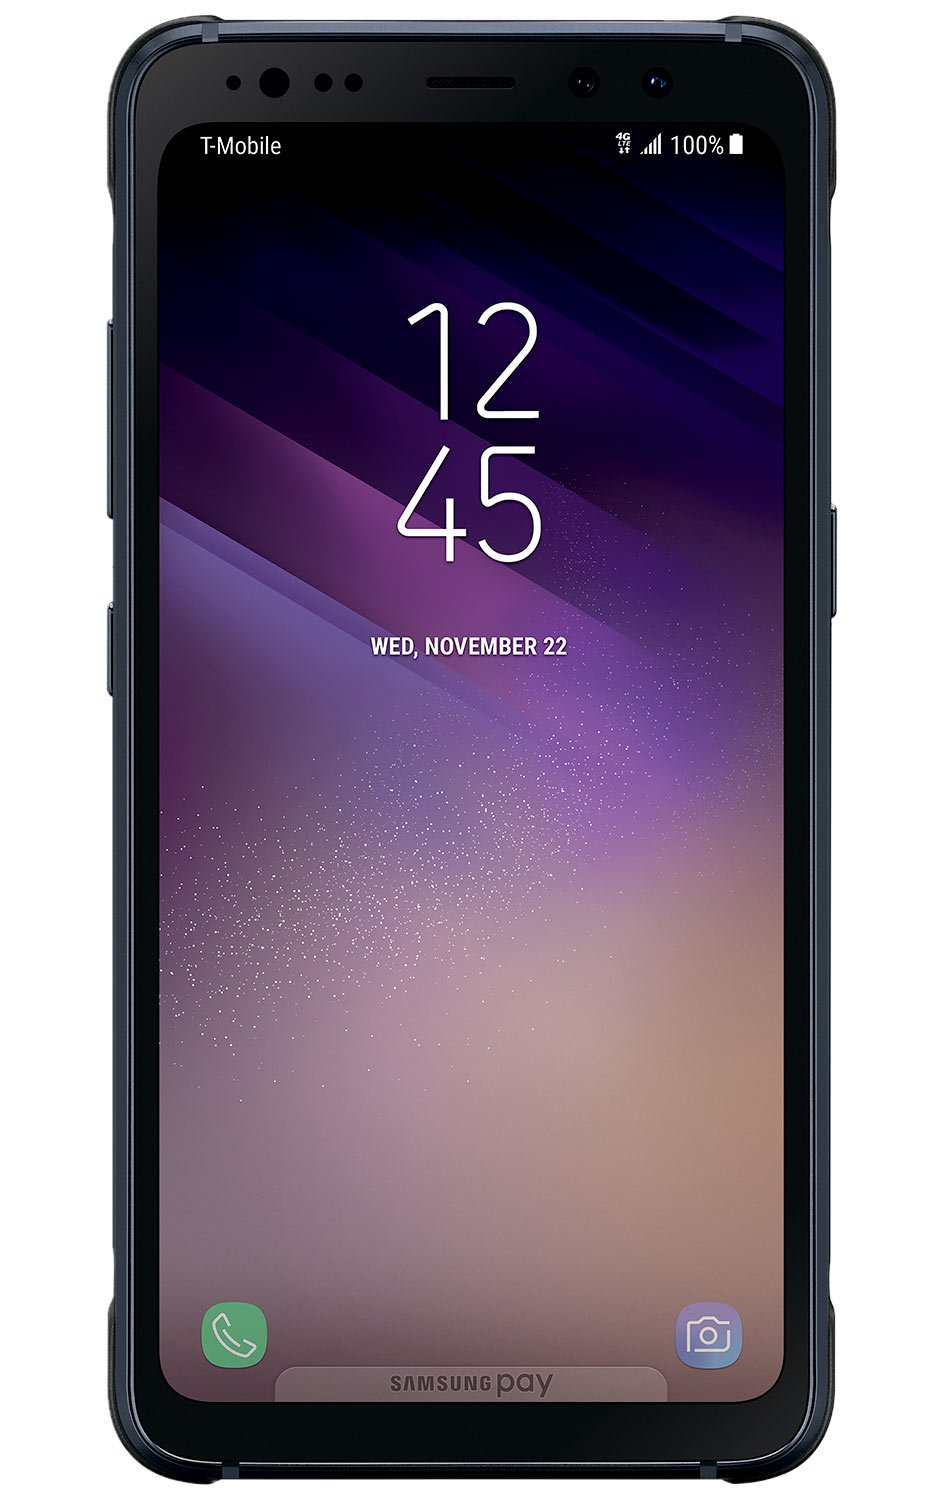 Samsung Galaxy S8 Unlocked 64GB - Midnight Black [US Version] - Voucherist